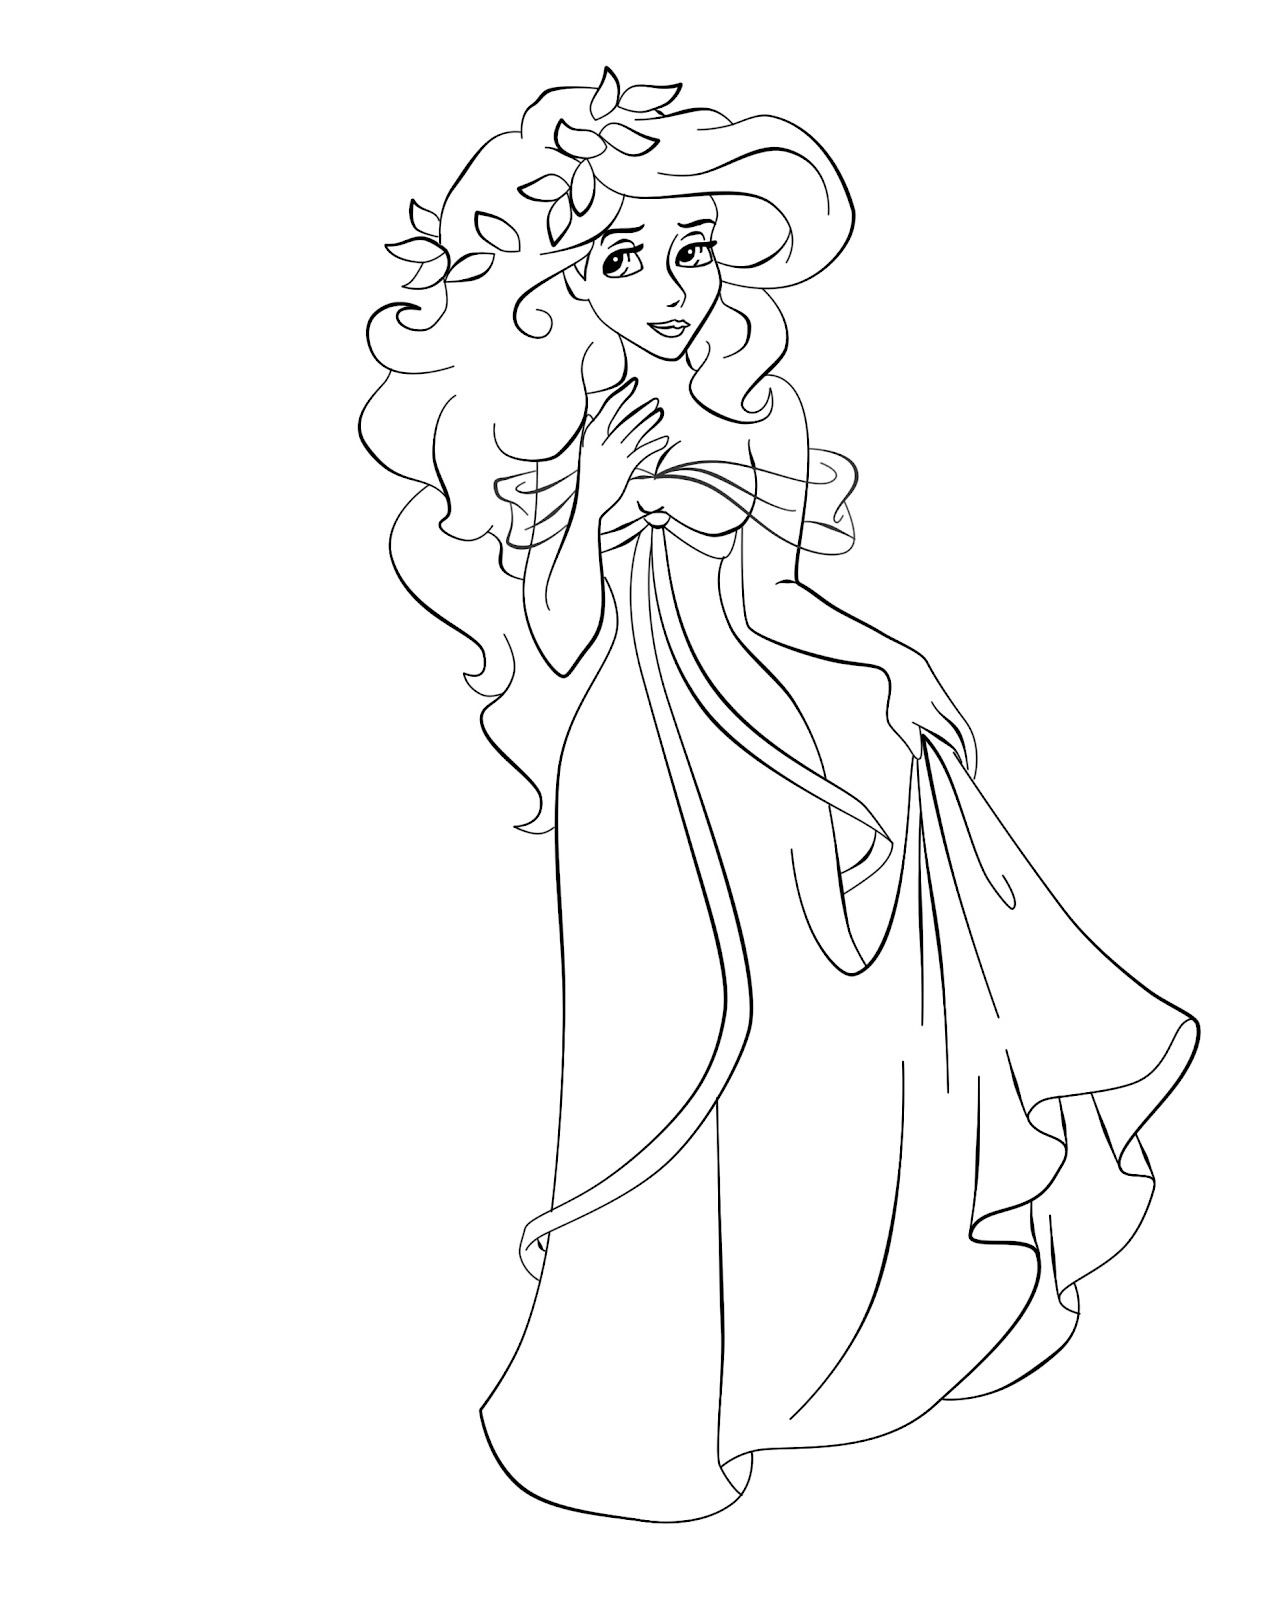 Princess giselle coloring pages - Disney Princess Giselle Coloring Page